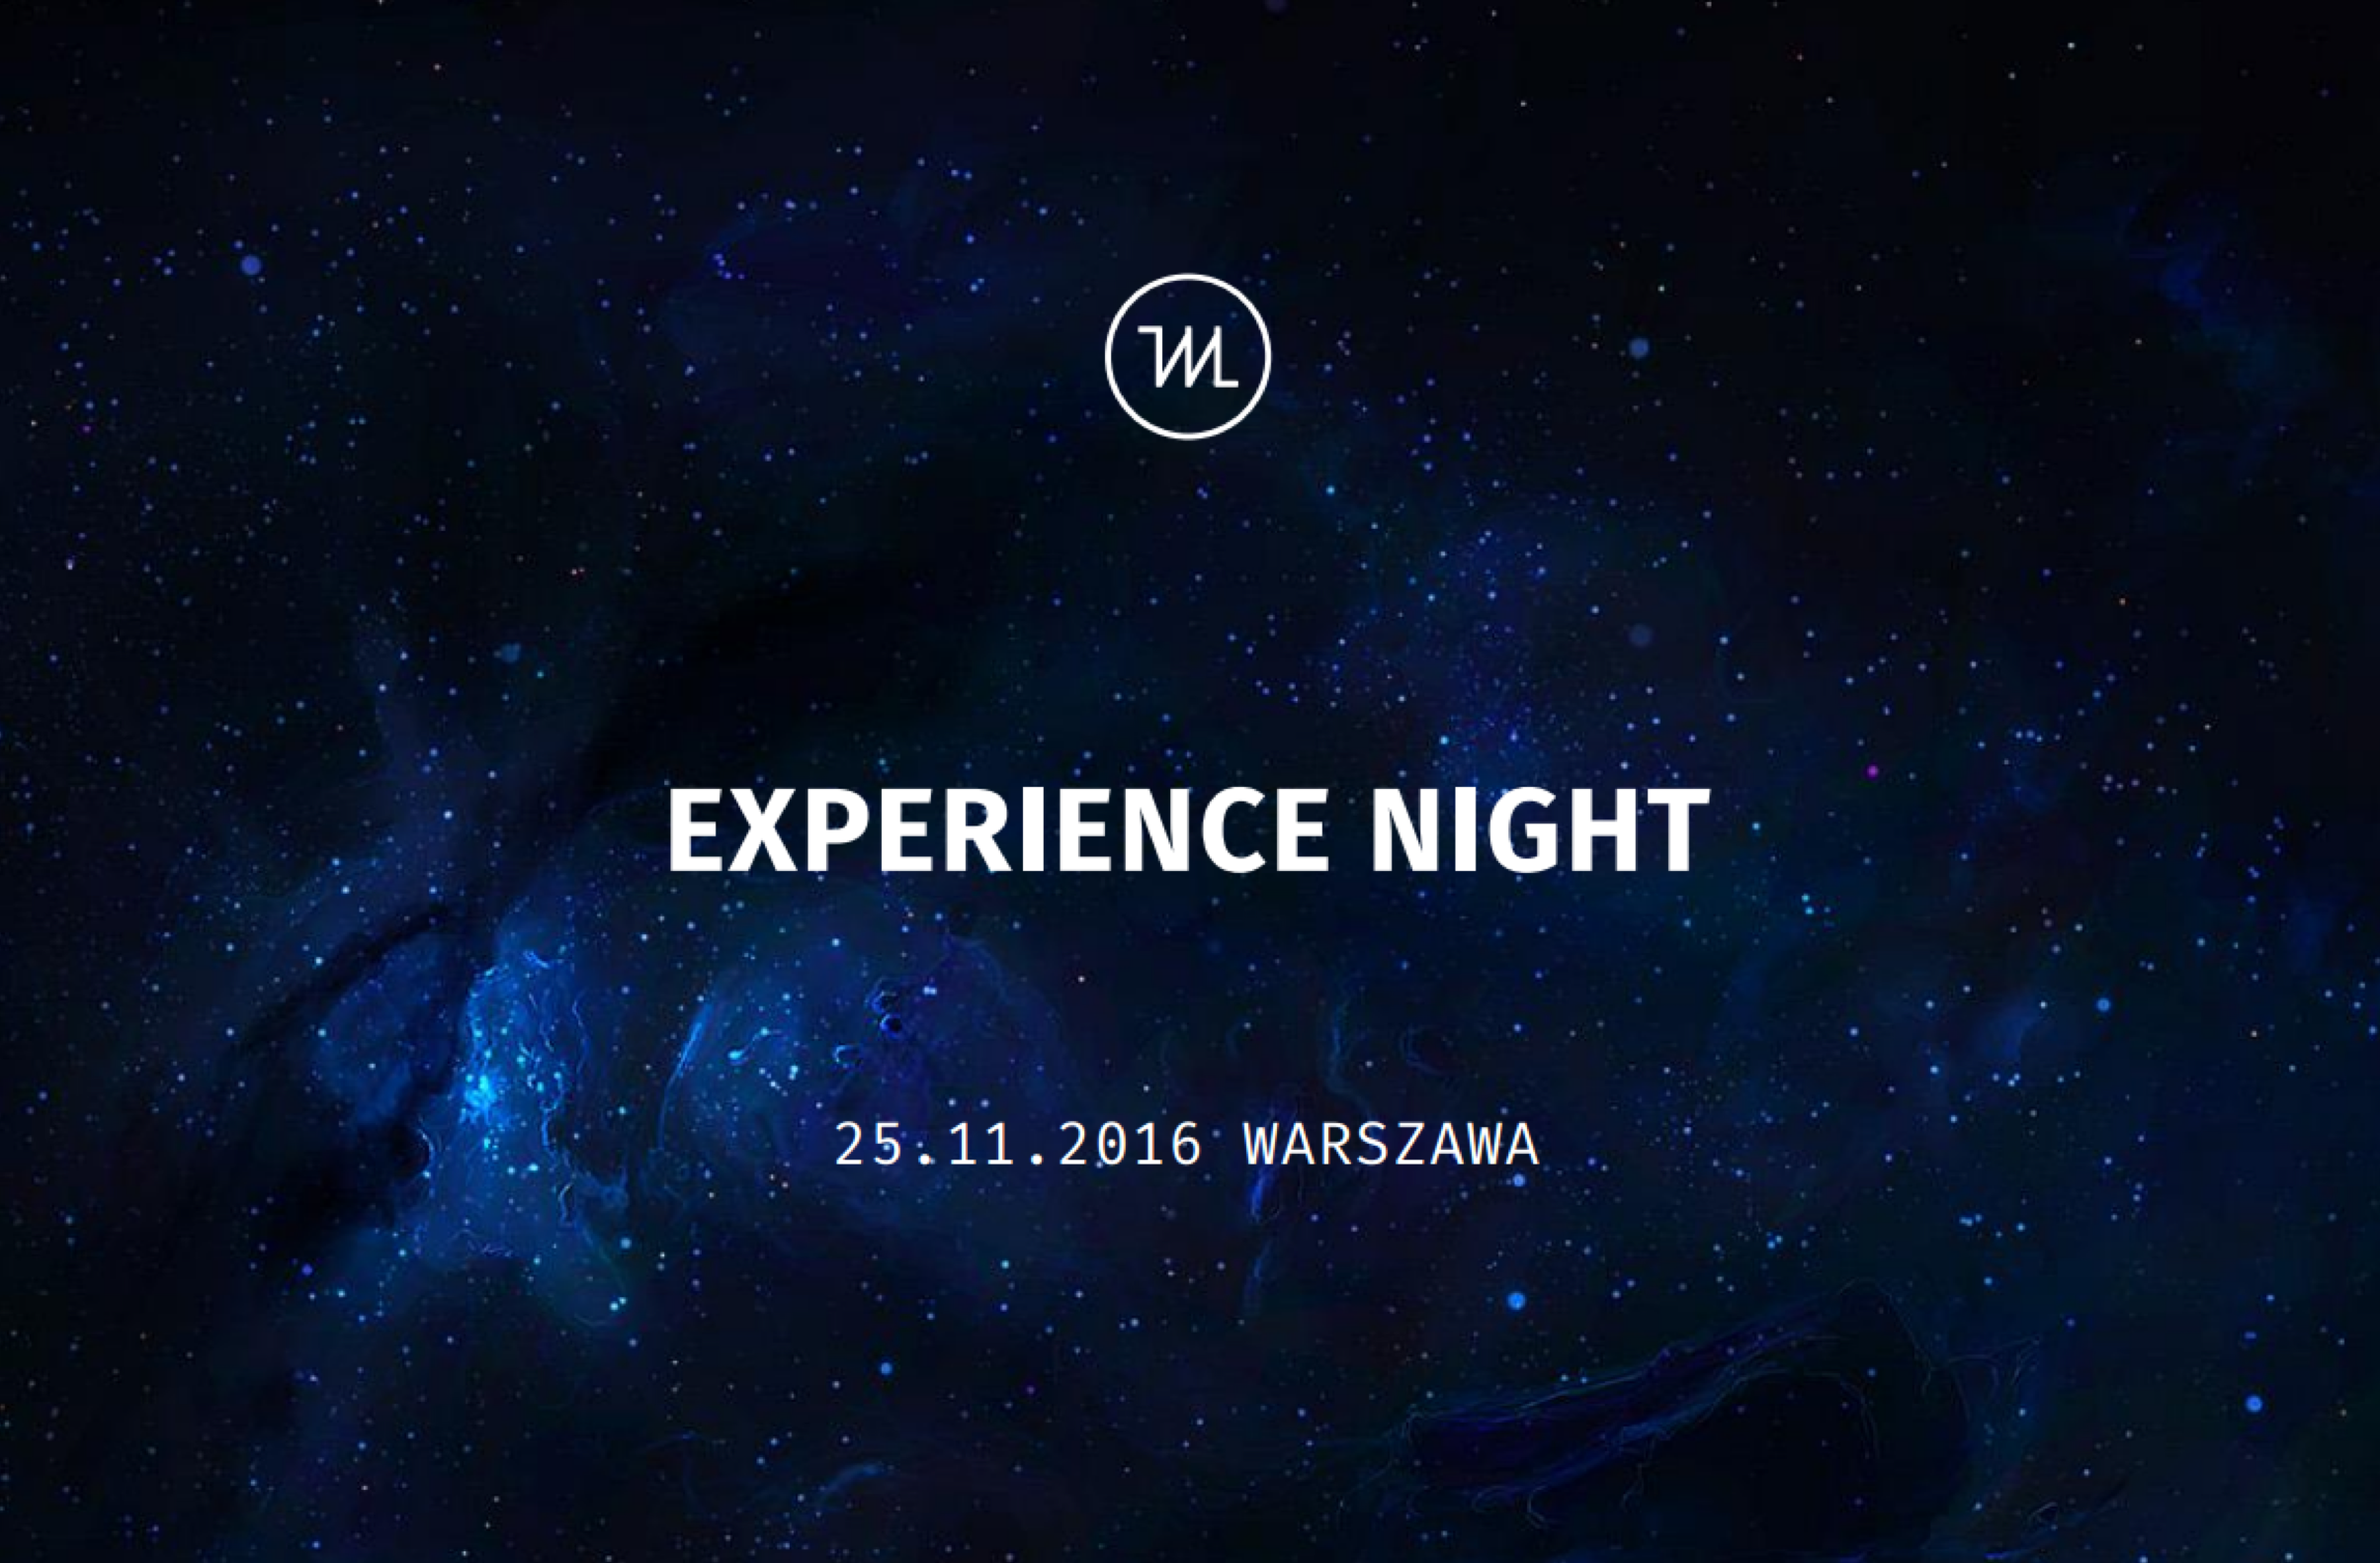 Experience Night conference - I had a pleasure and honour to create and organize a one-of-a-kind Lightning Talks conference on Experience Design